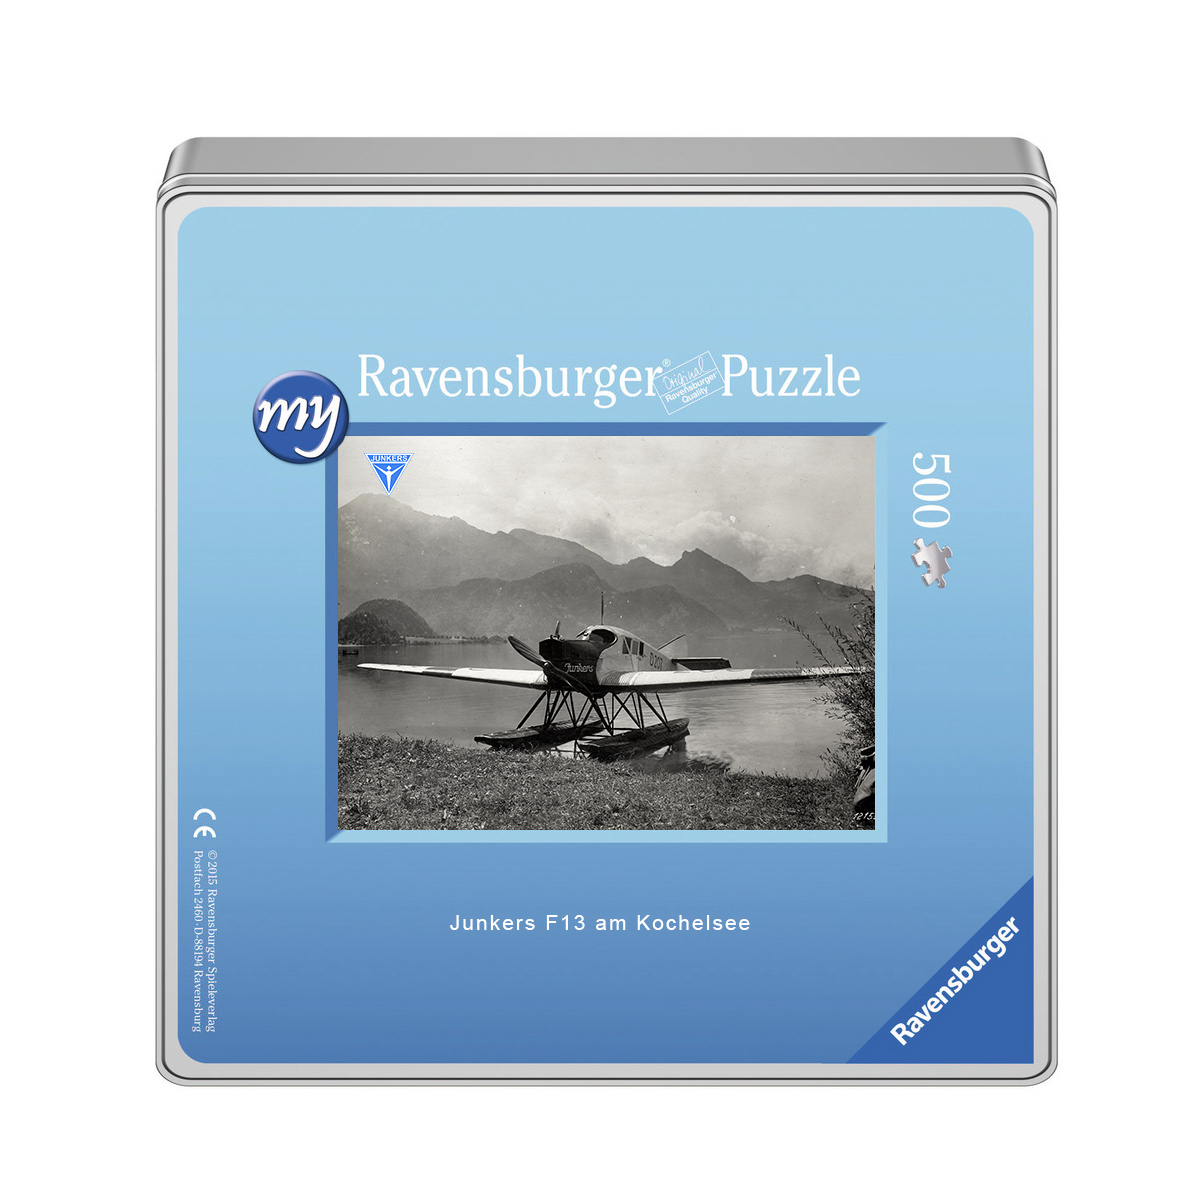 Junkers F13 am Kochelsee Puzzle